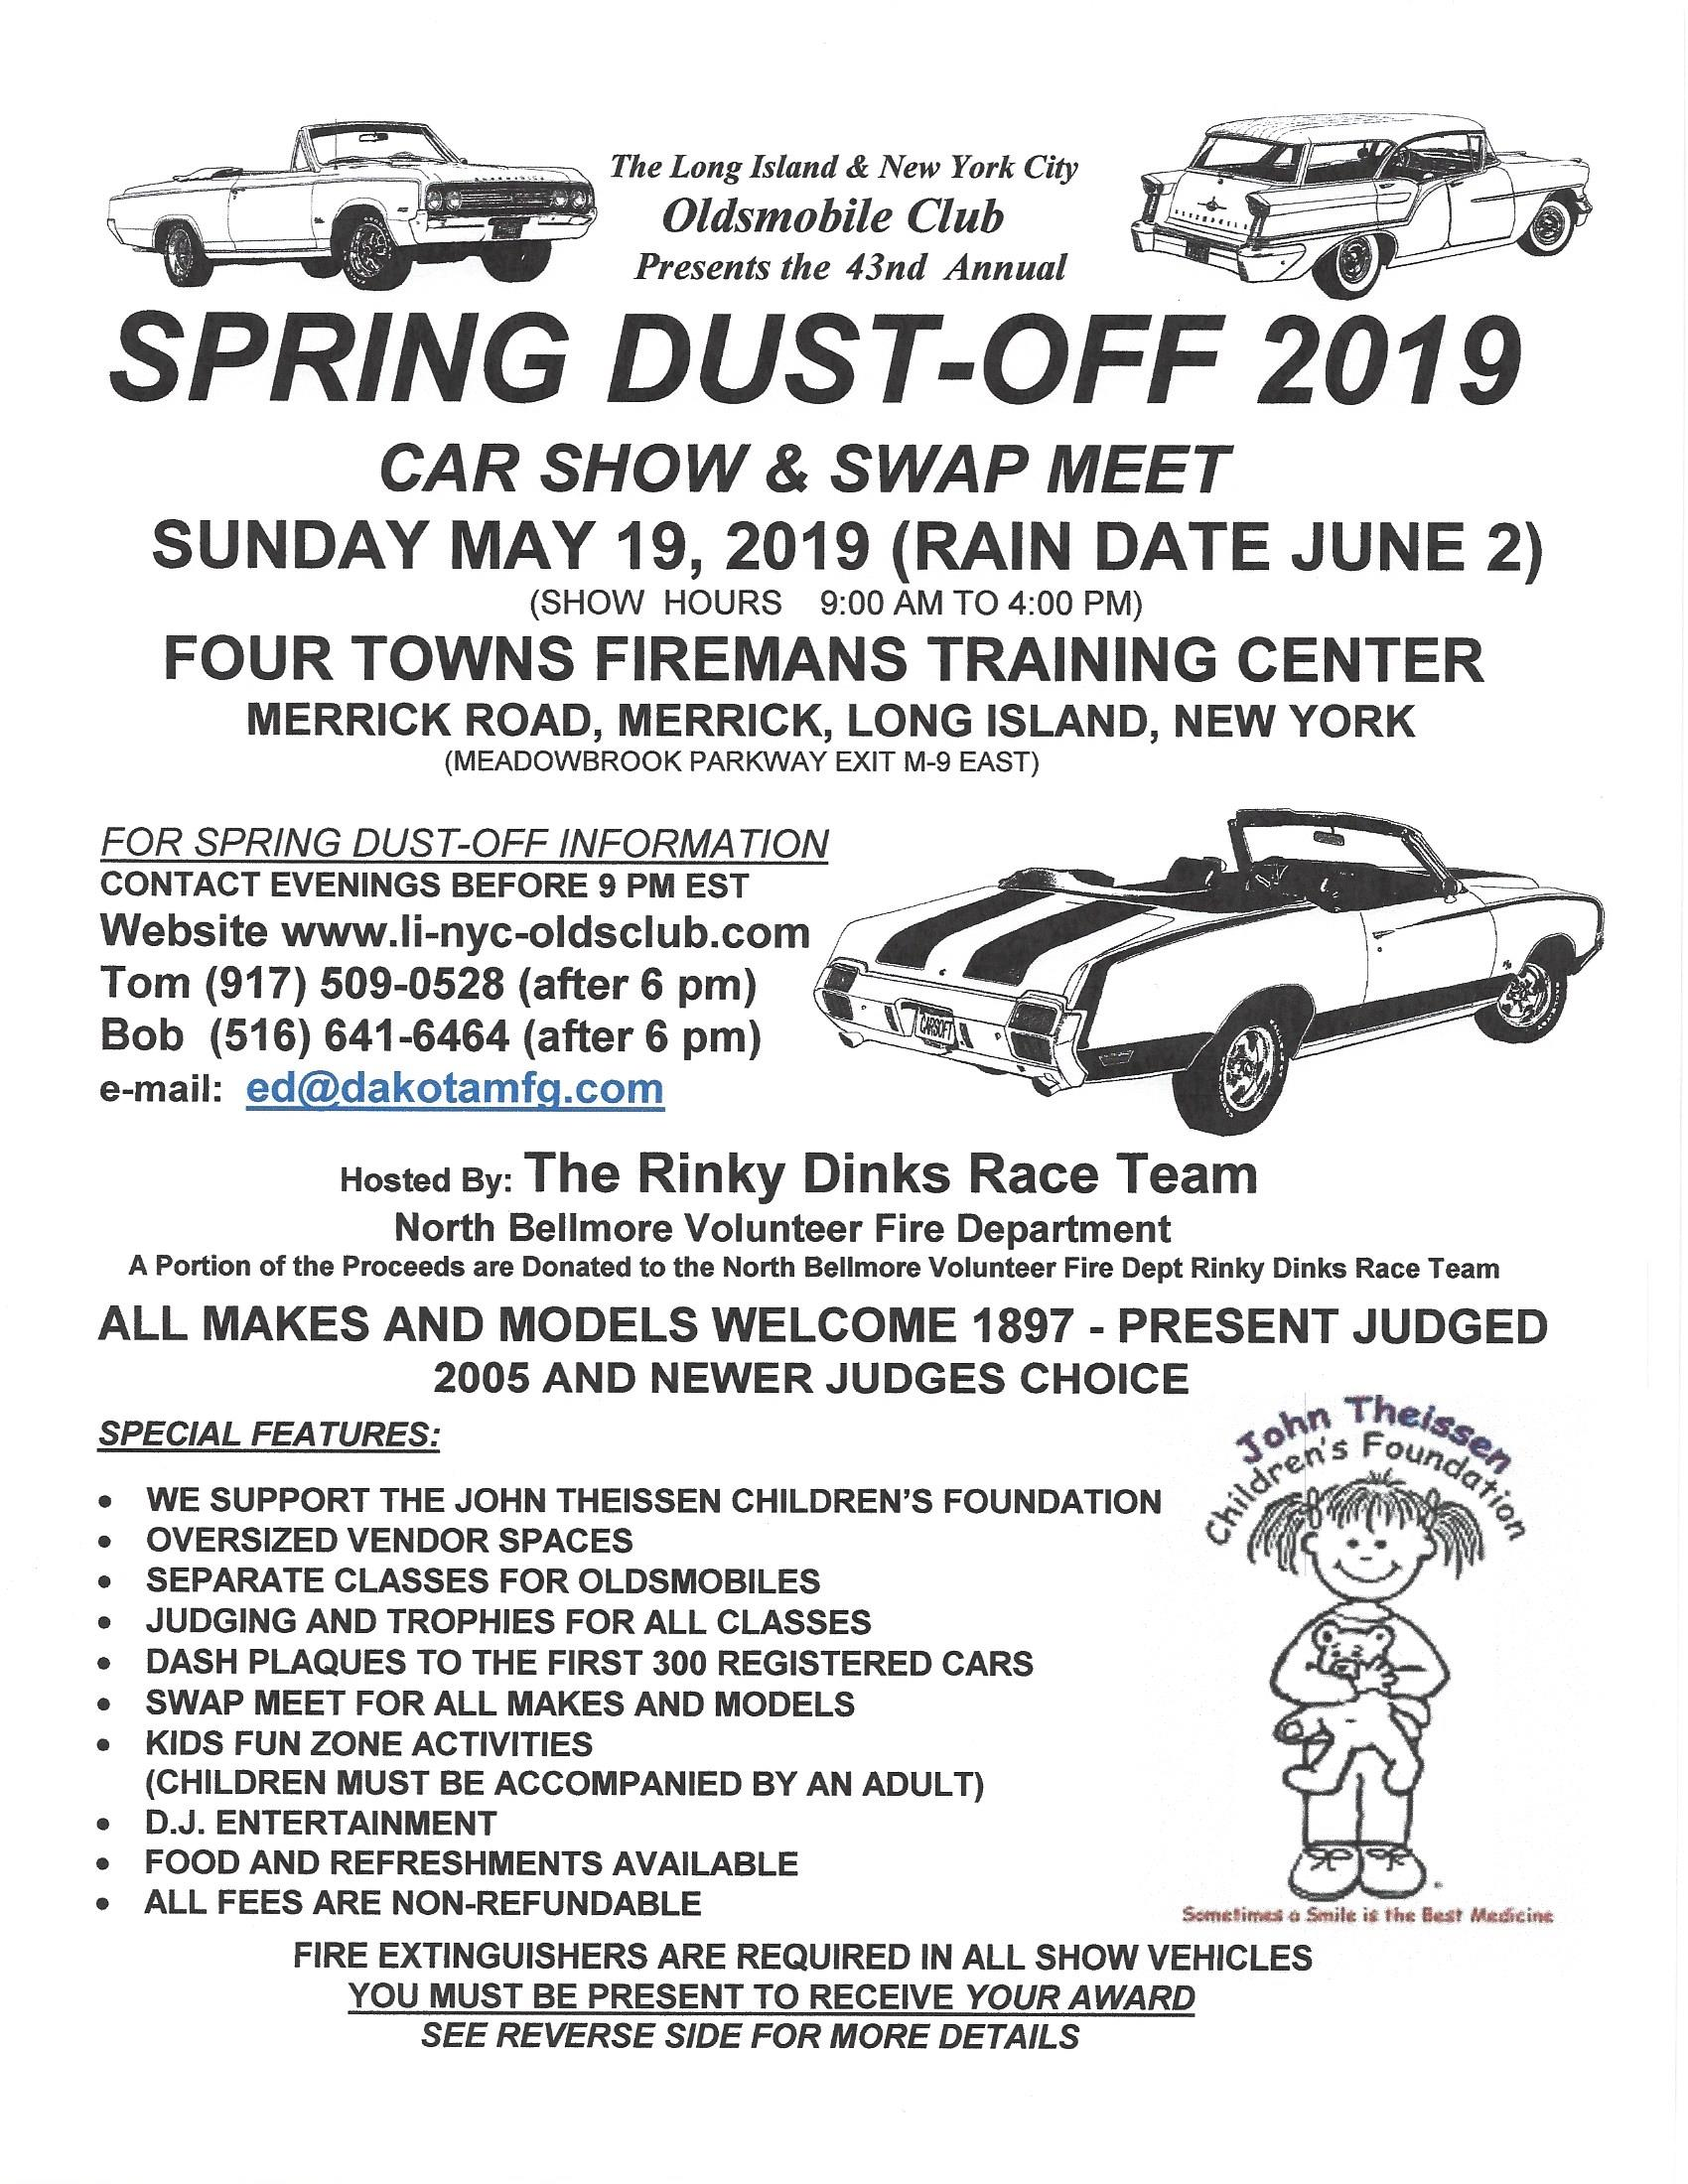 LI NYC Dust off 2019 Flier Rev C 02 20 19 Page 1